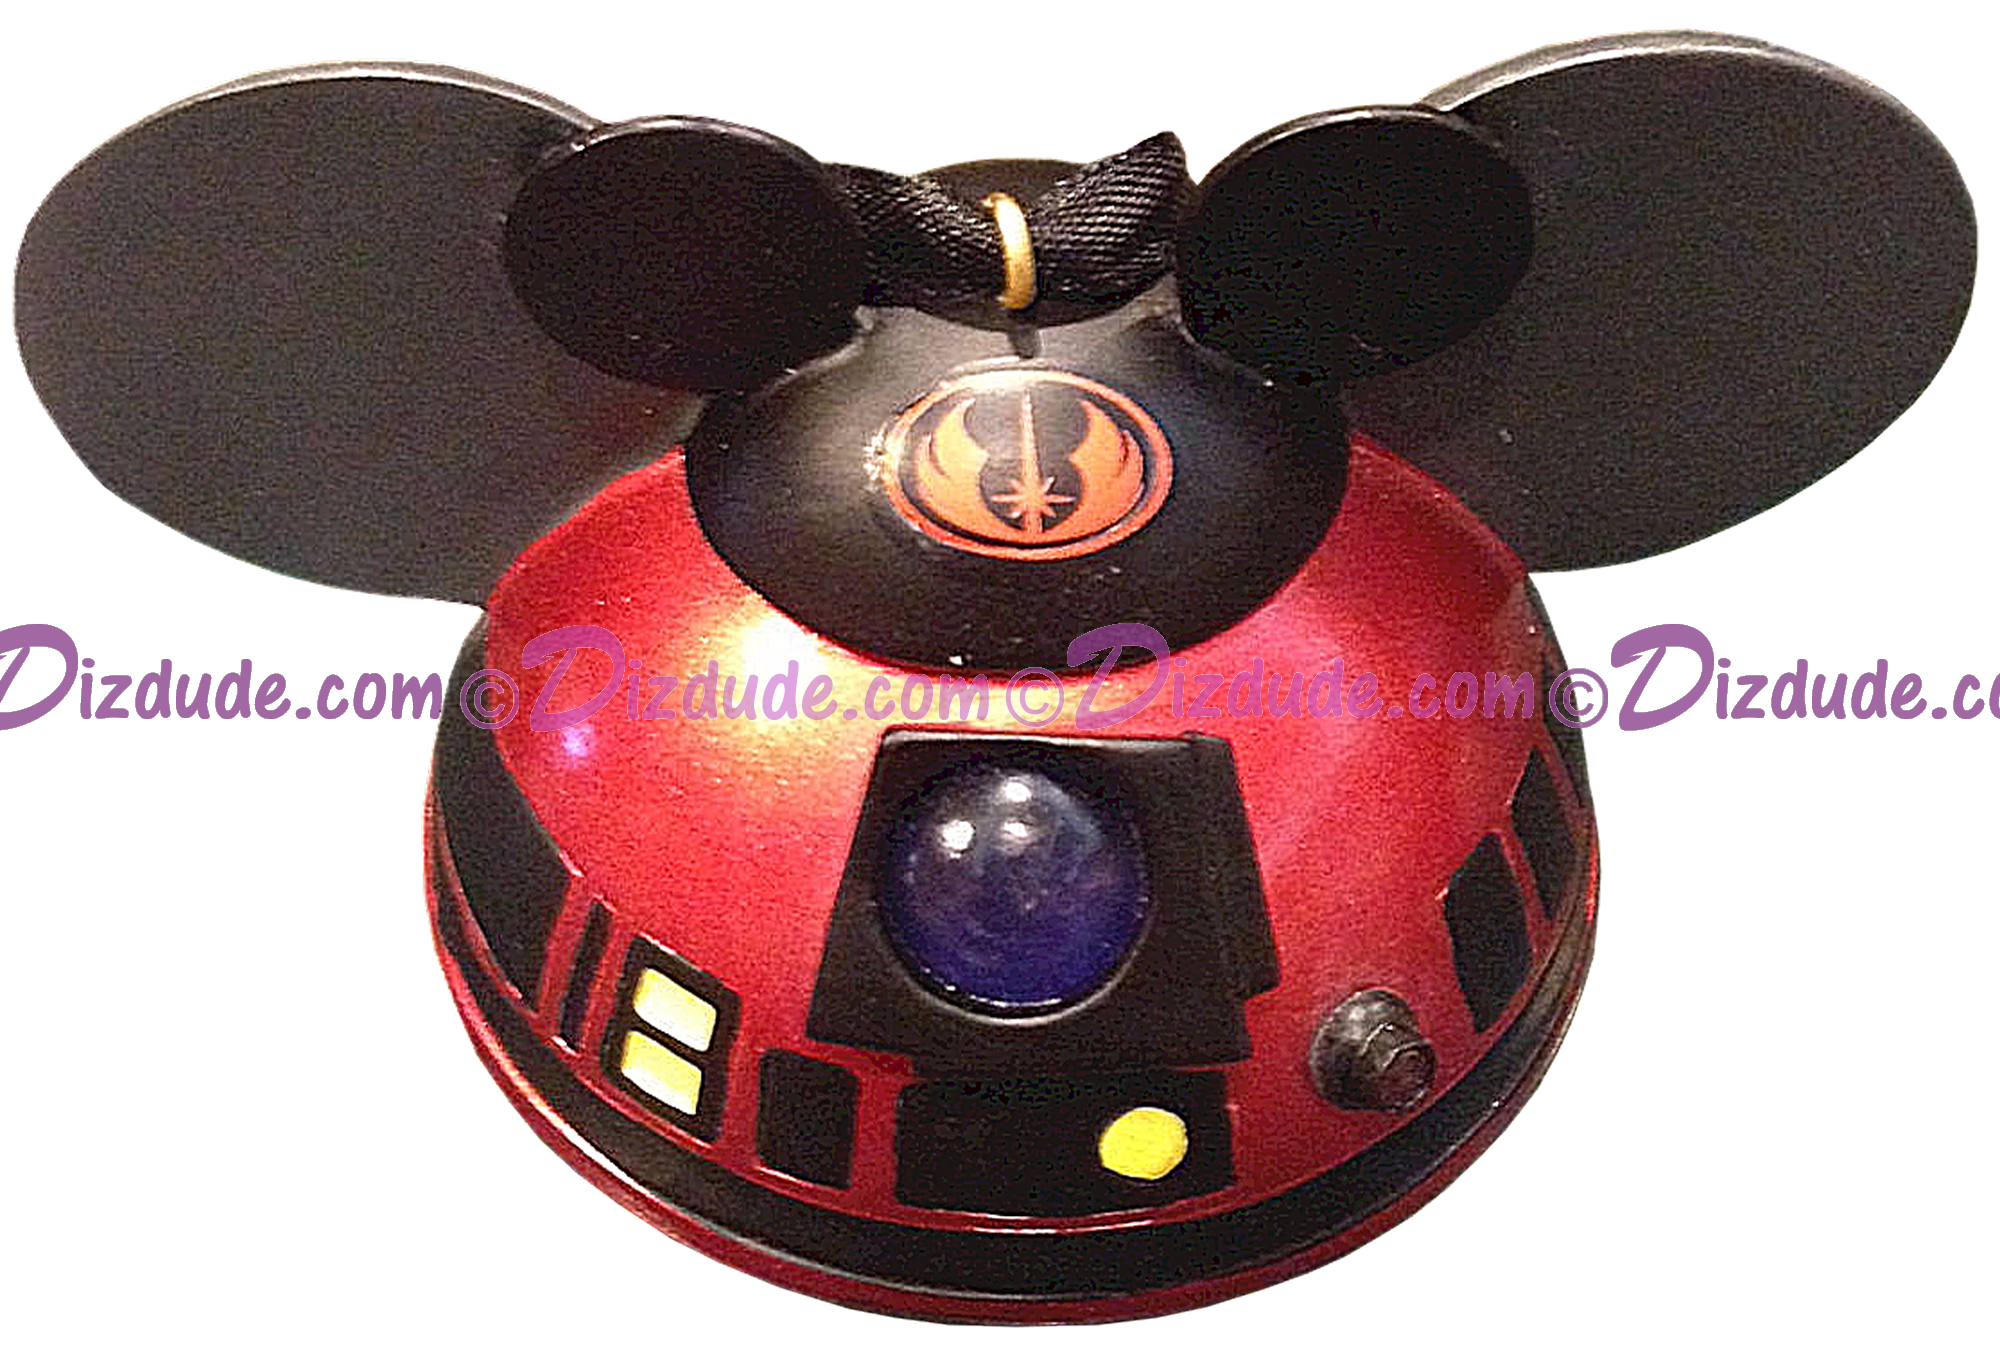 Dizdude Com Disney Star Wars R2 Mk Light Up Christmas